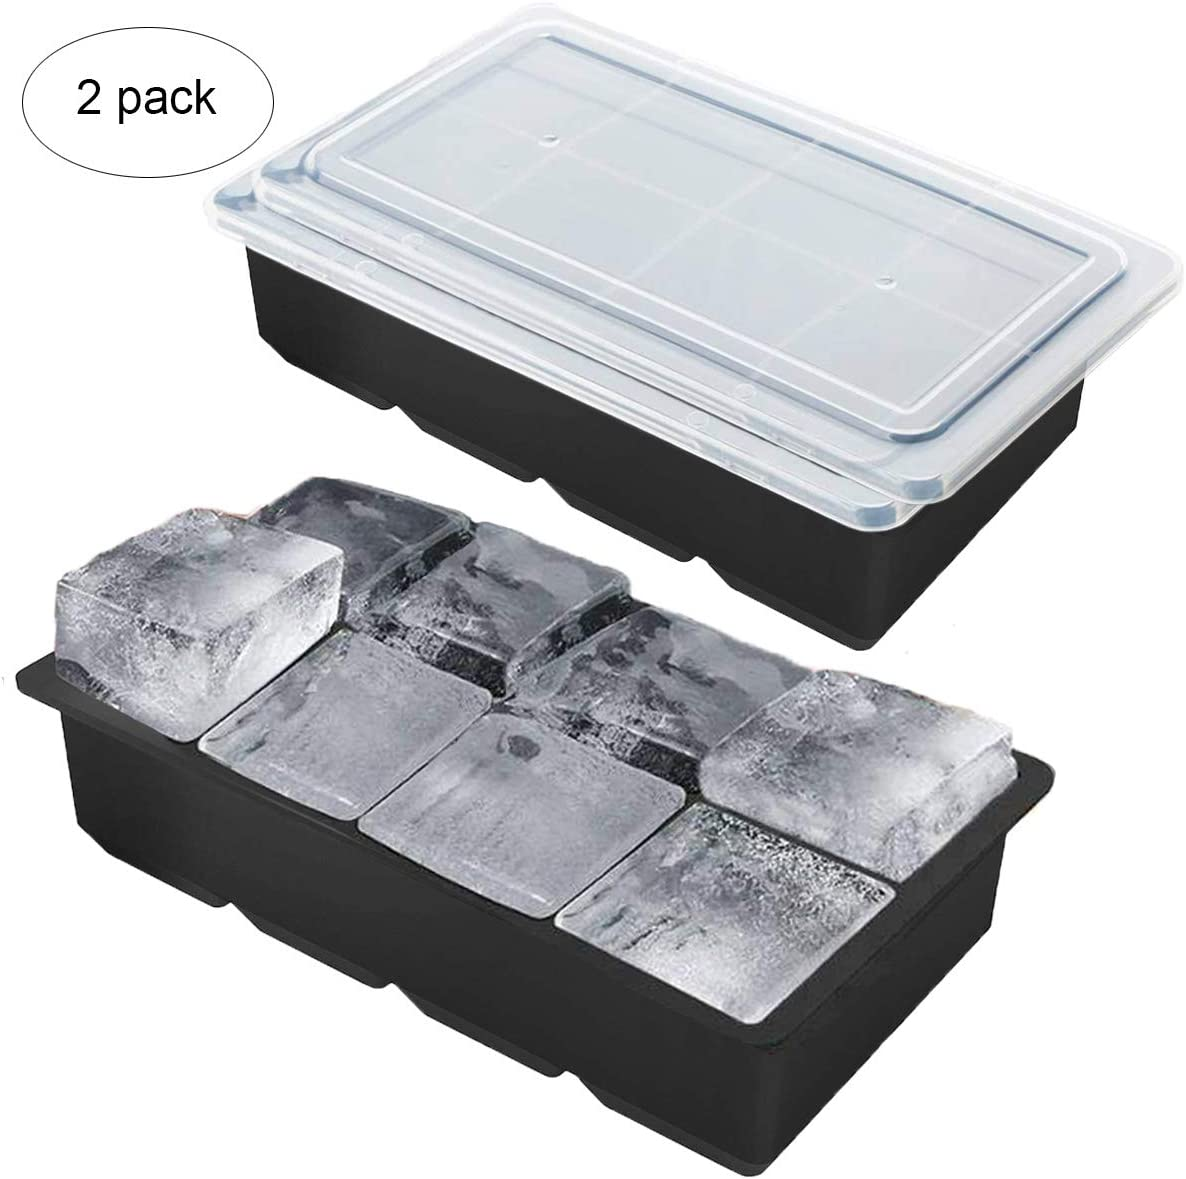 Large Ice Cube Trays with Lid for Whiskey 8 Cavity Silicone Large Ice Cube Mold with Cover Set of 2, BPA Free